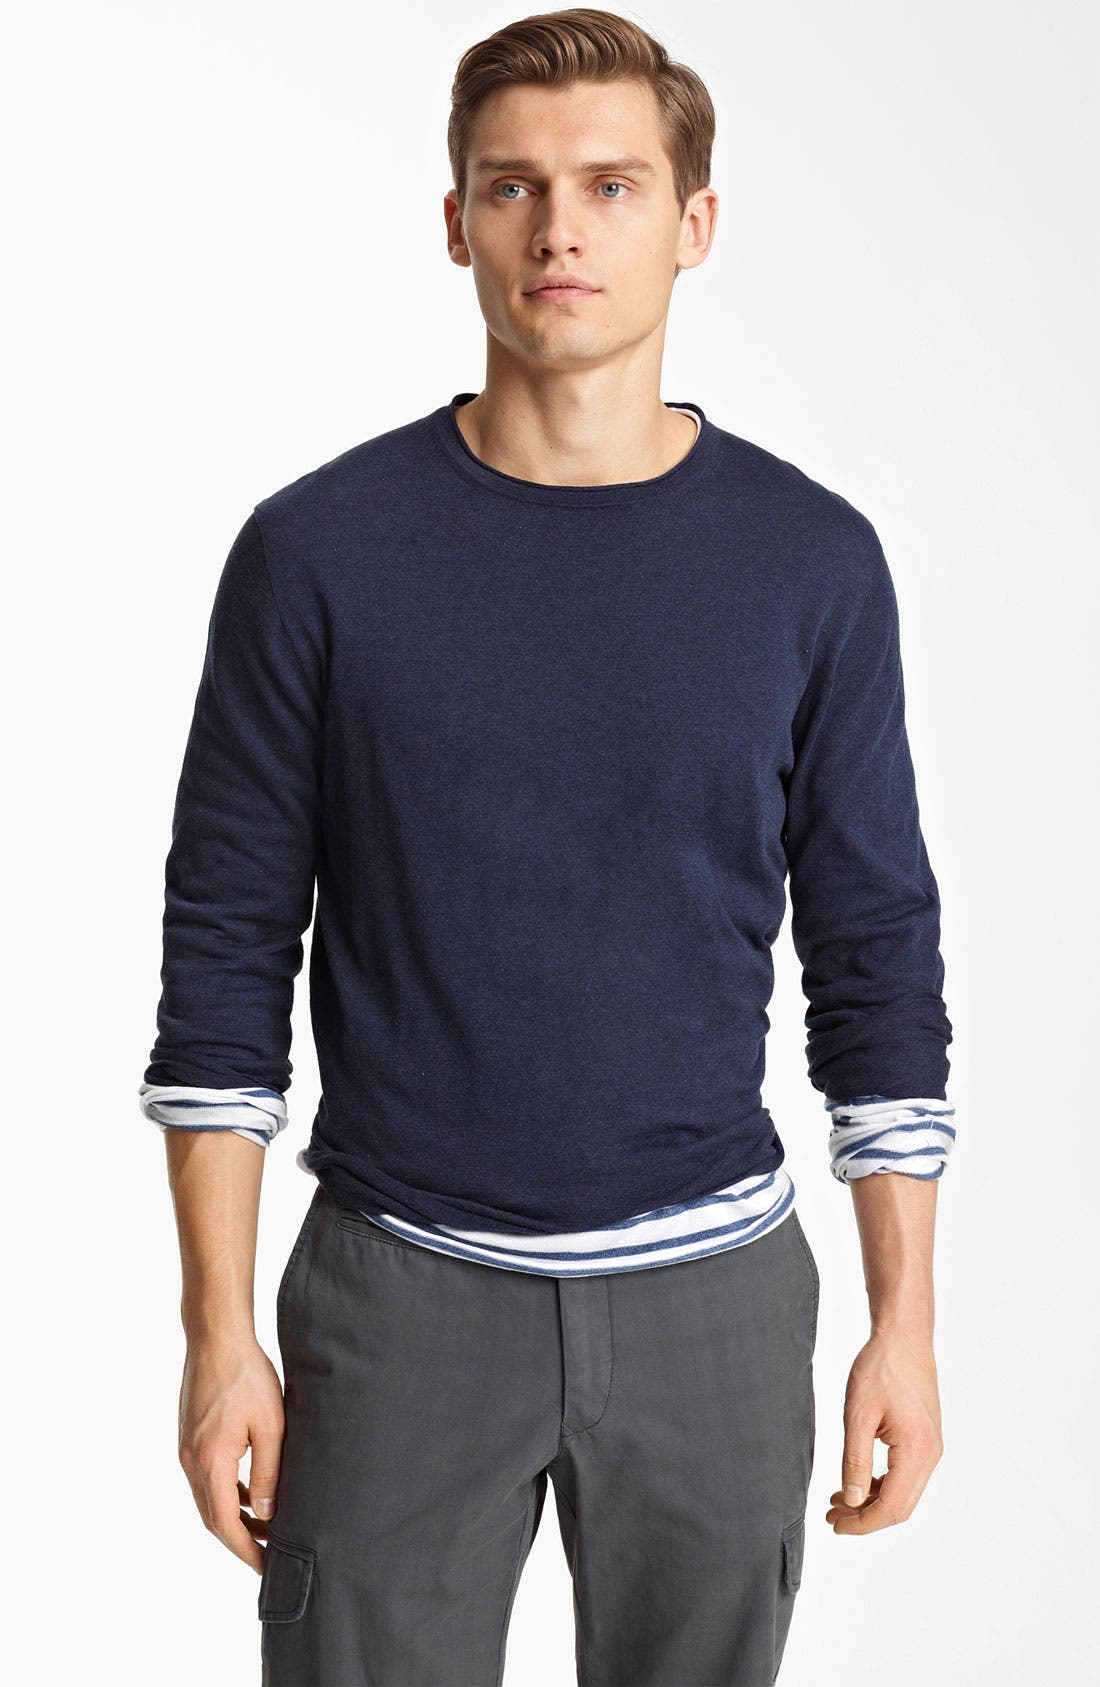 Alternate Image 1 Selected - Zegna Sport Double Layer Crewneck T-Shirt